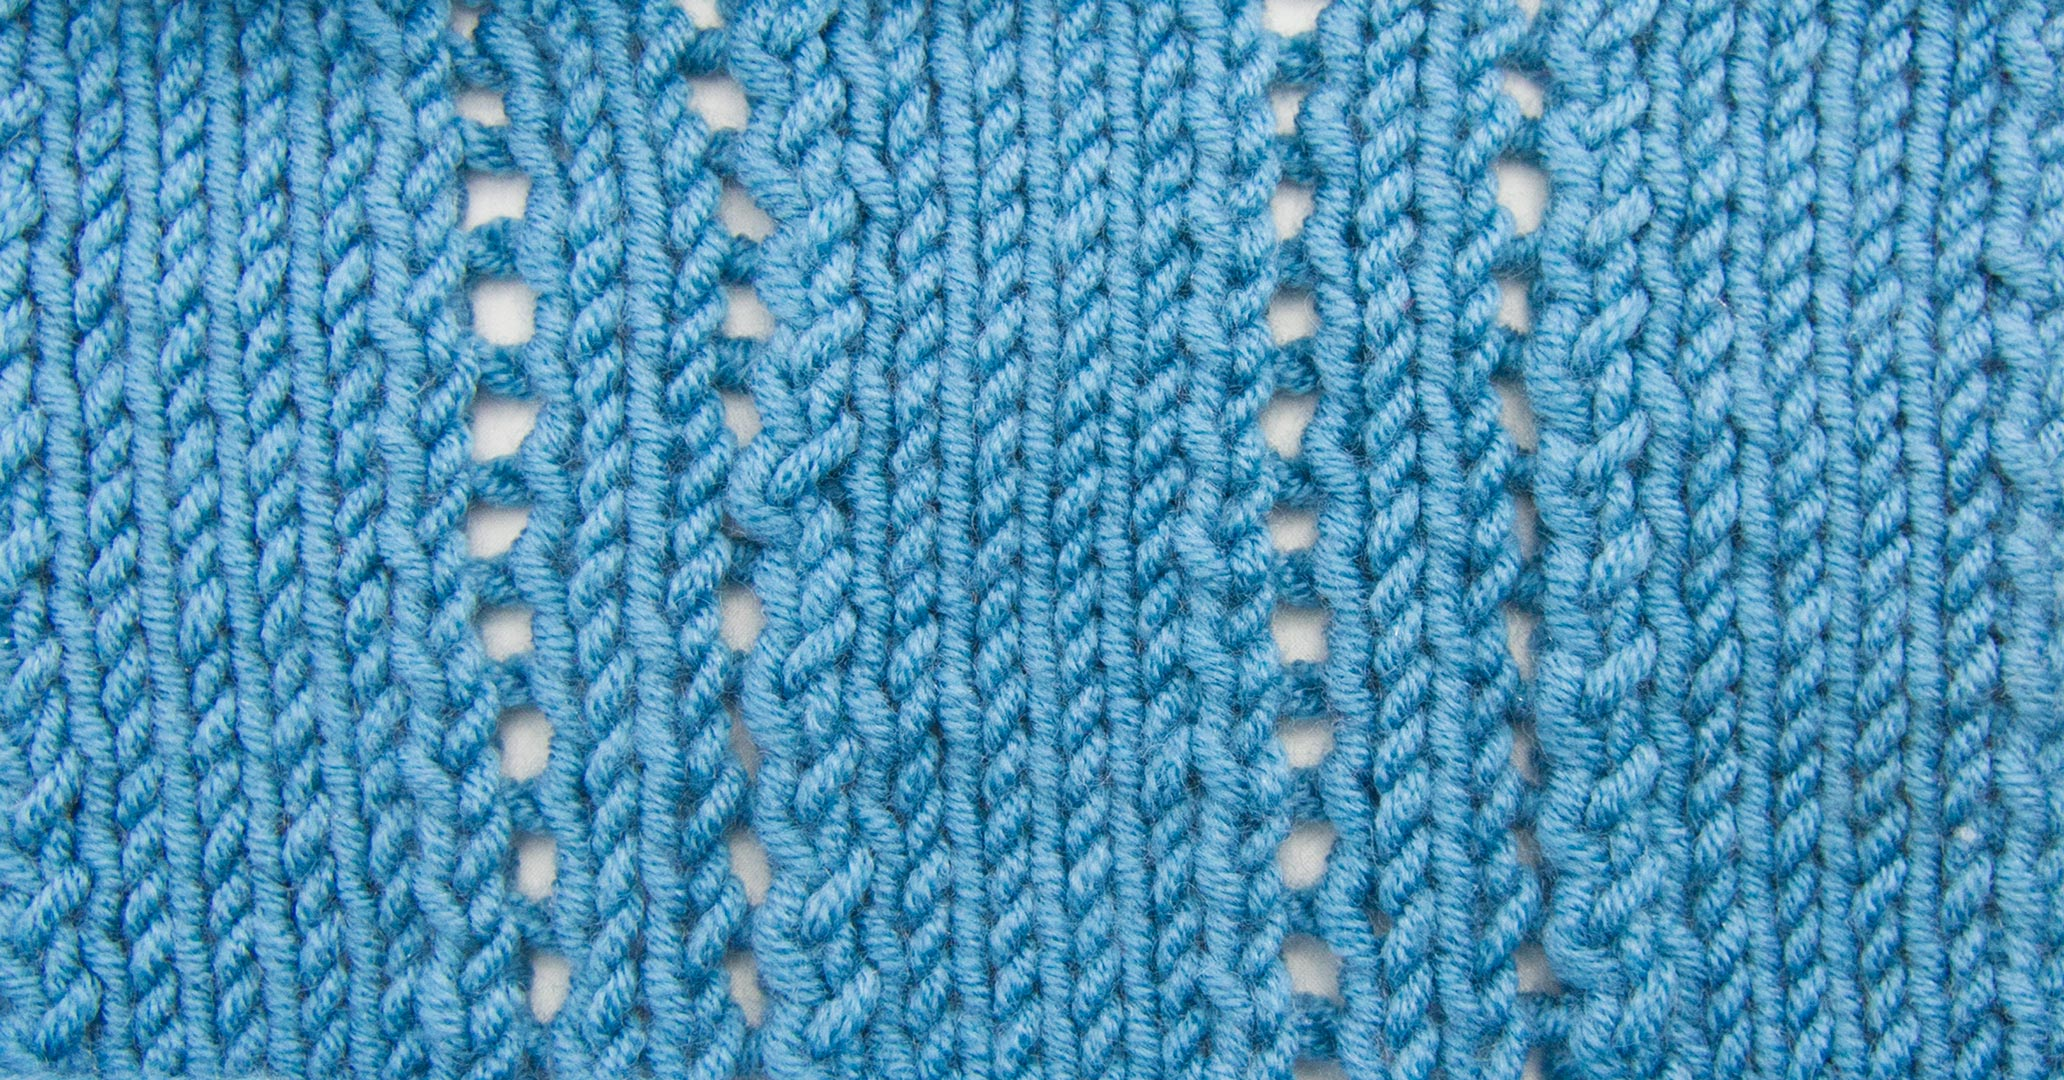 What you need to know about knitting stitches